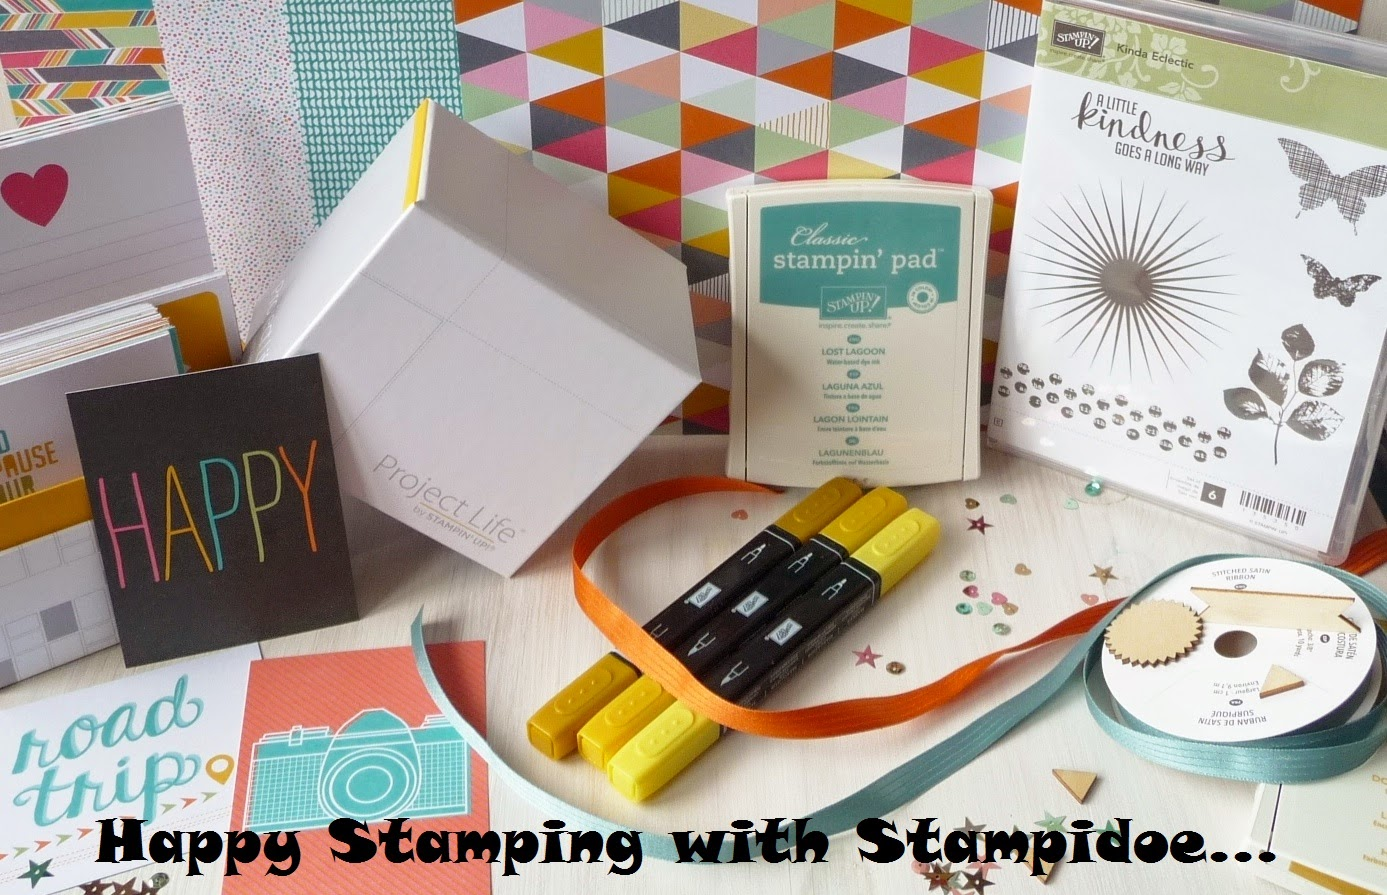 Happy Stamping with Stampidoe